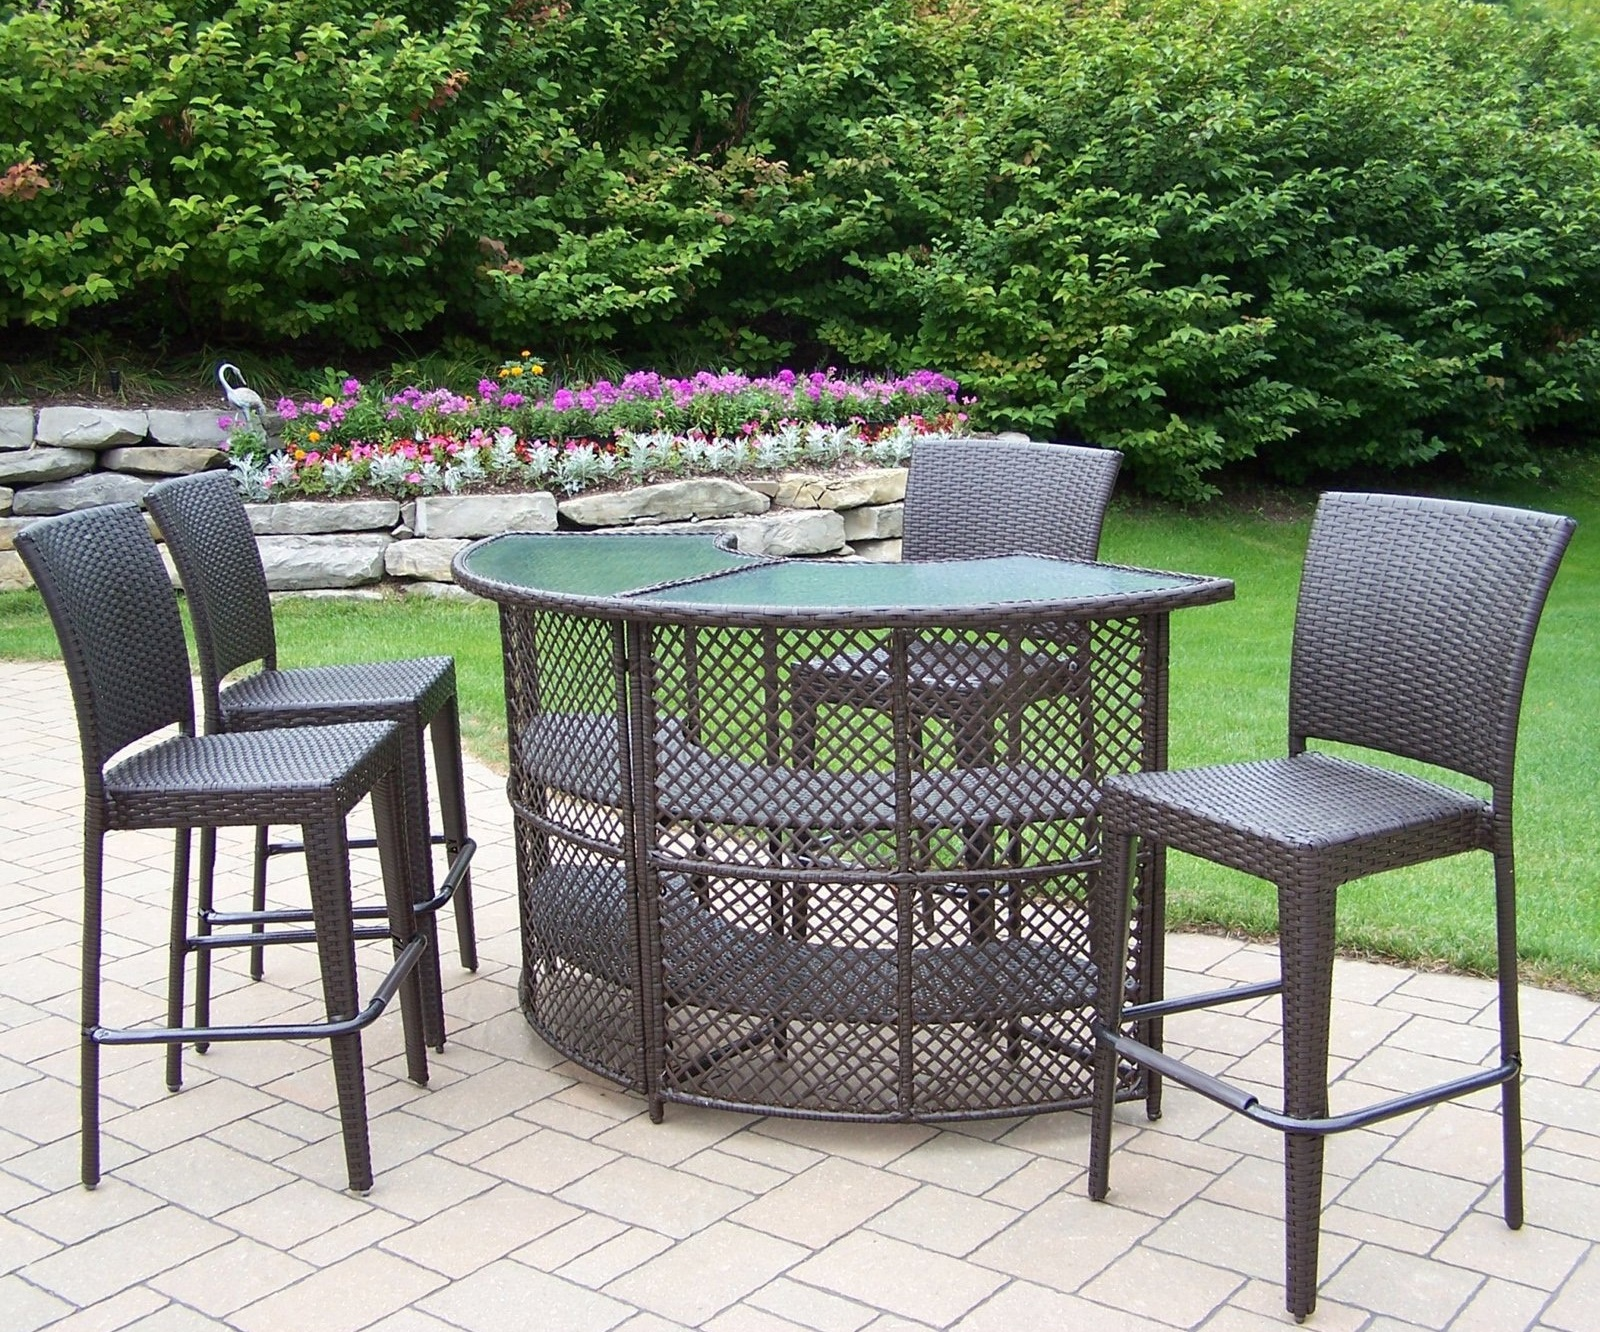 Outdoor patio bar sets image for Patio furniture sets